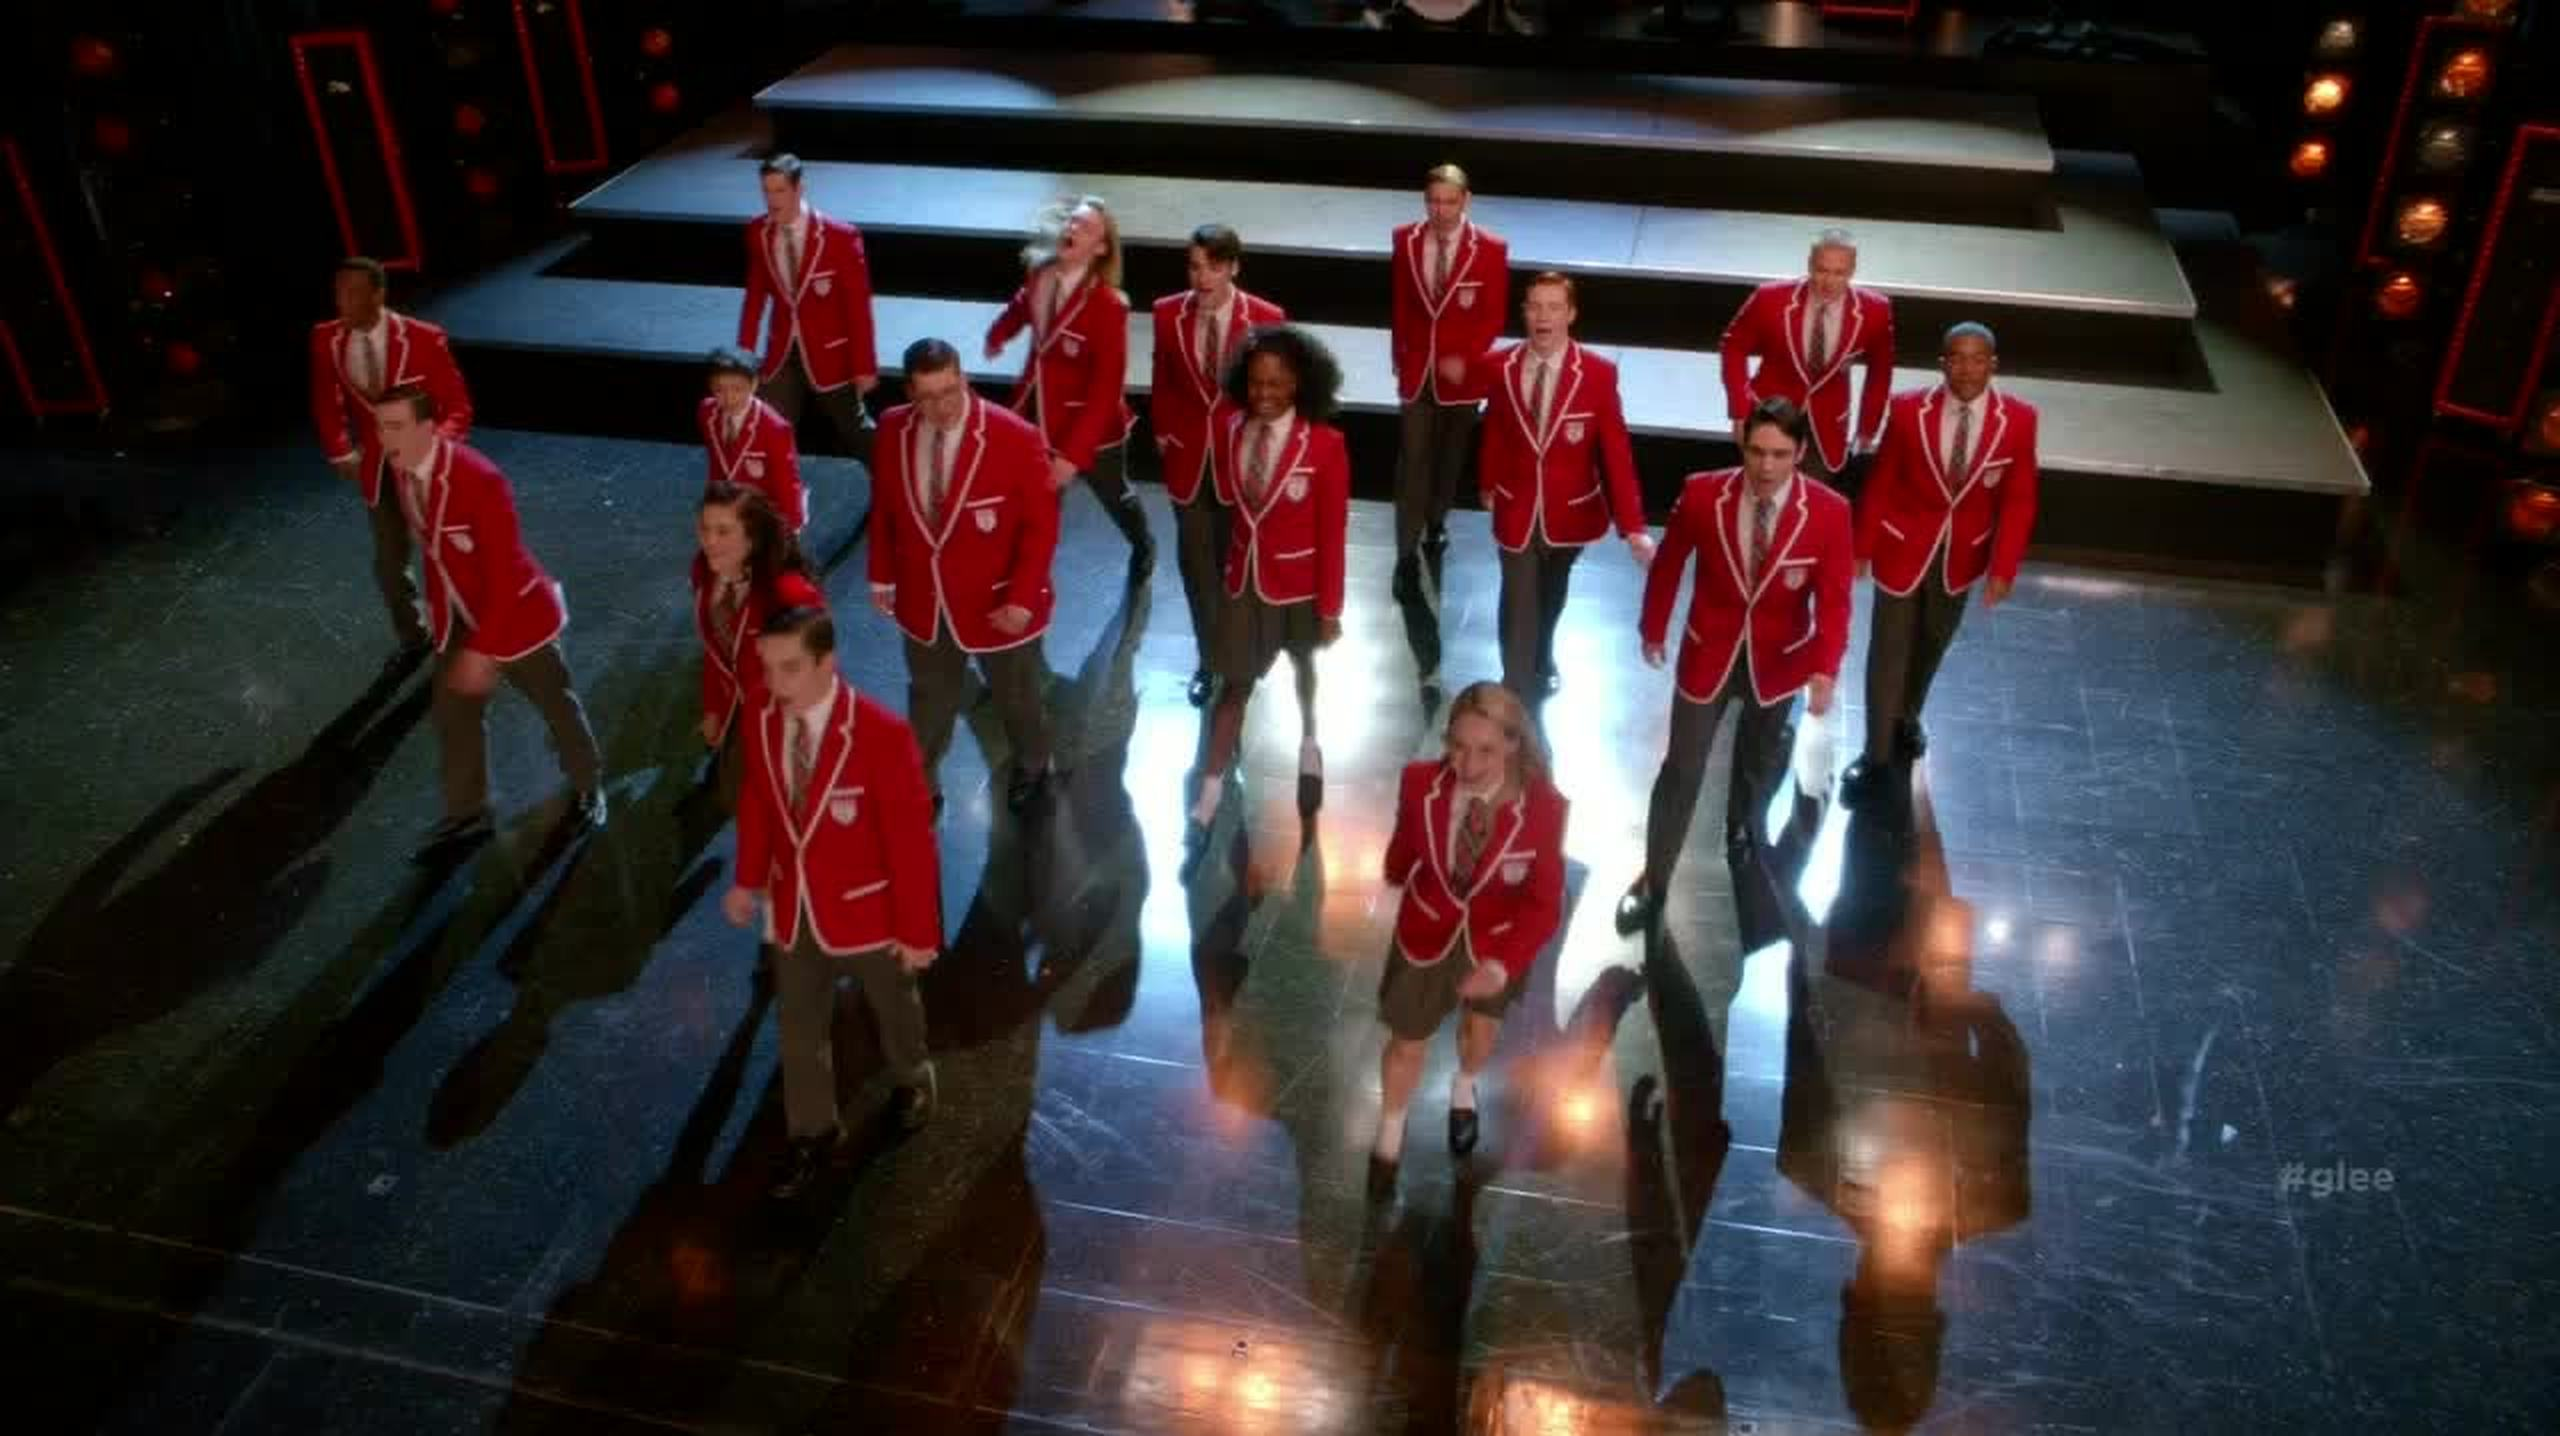 New Directions + Warblers = New Warblers